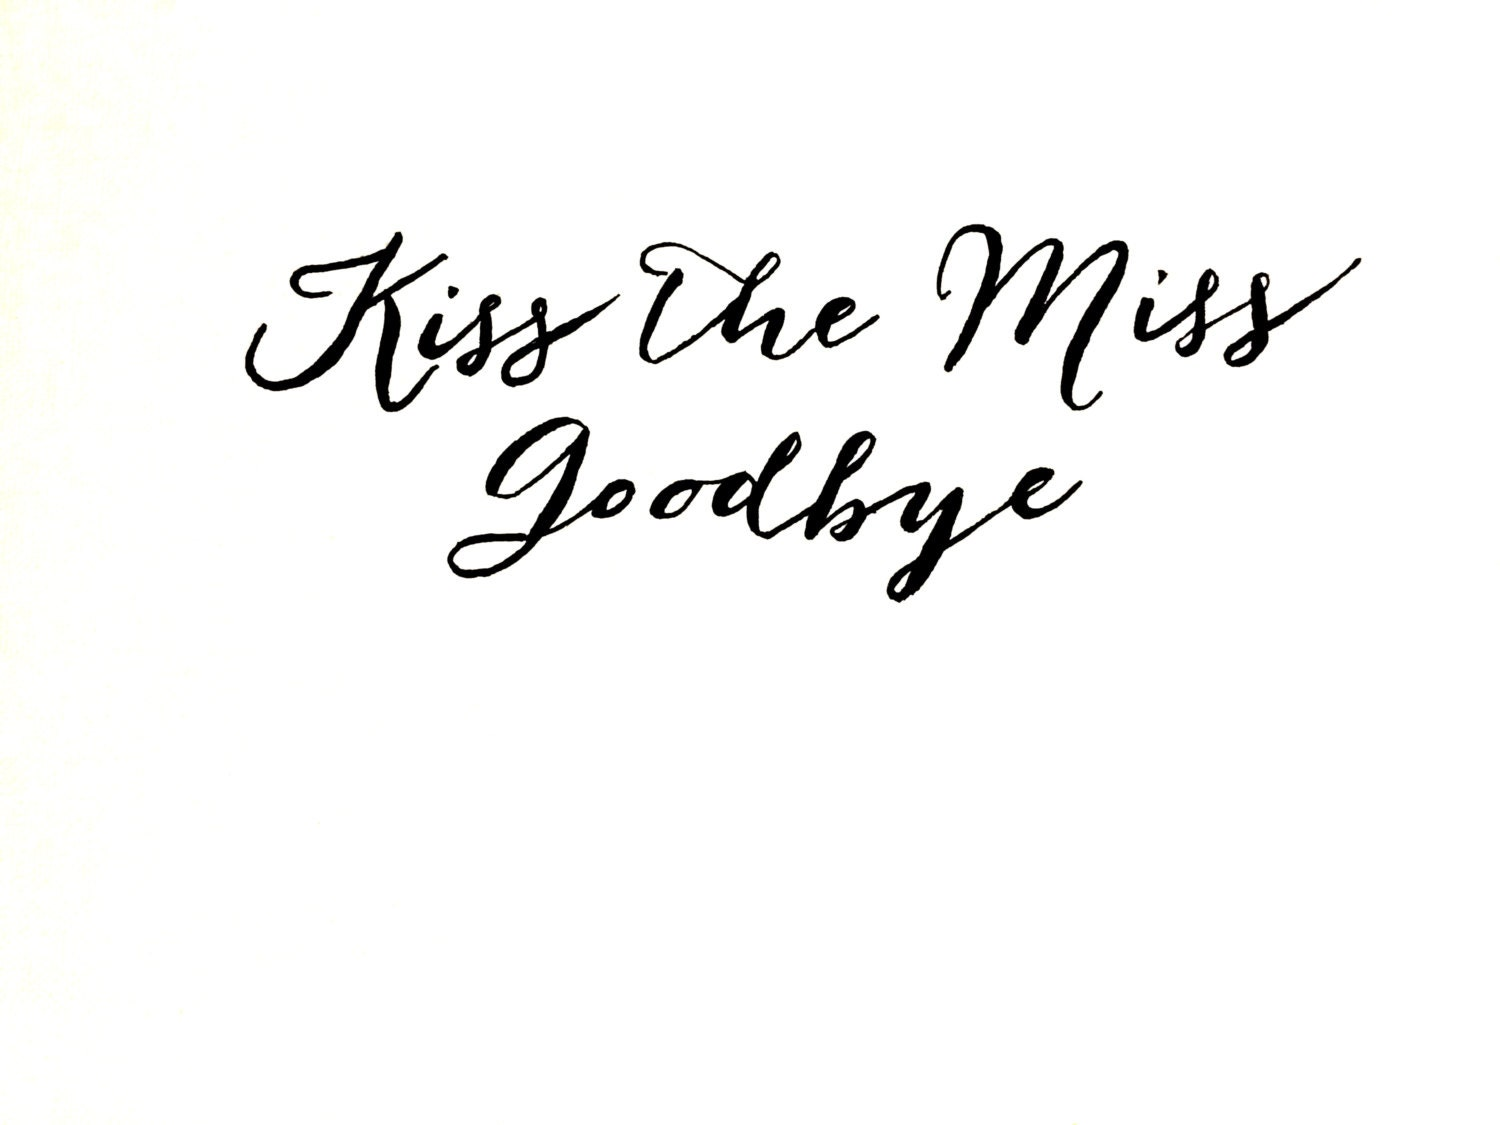 picture about Kiss the Miss Goodbye Printable identified as 100+ Font Kiss The Miss out on Goodbye yasminroohi